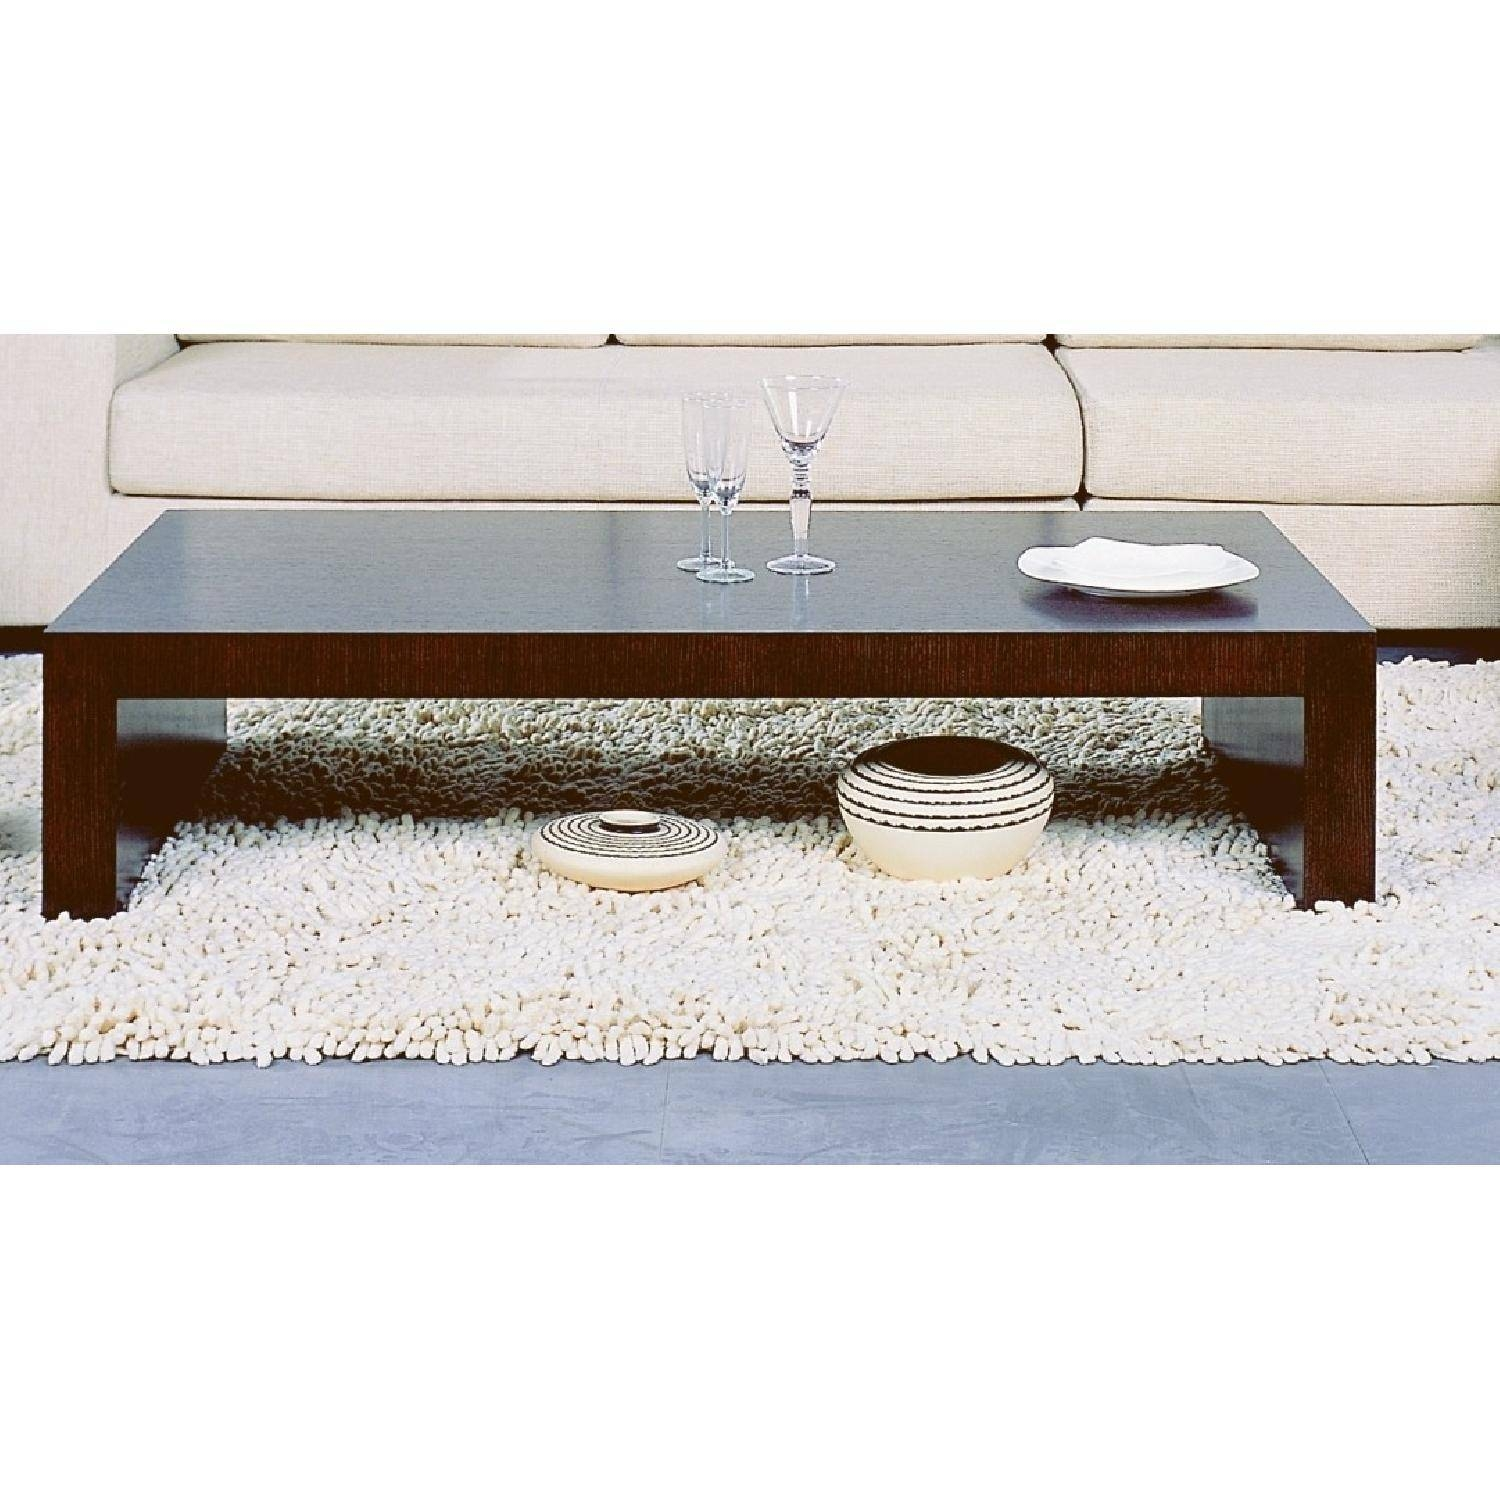 Modern Minimalist Style Coffee Table In Espresso Finish - Aptdeco inside Espresso Coffee Tables (Image 20 of 30)